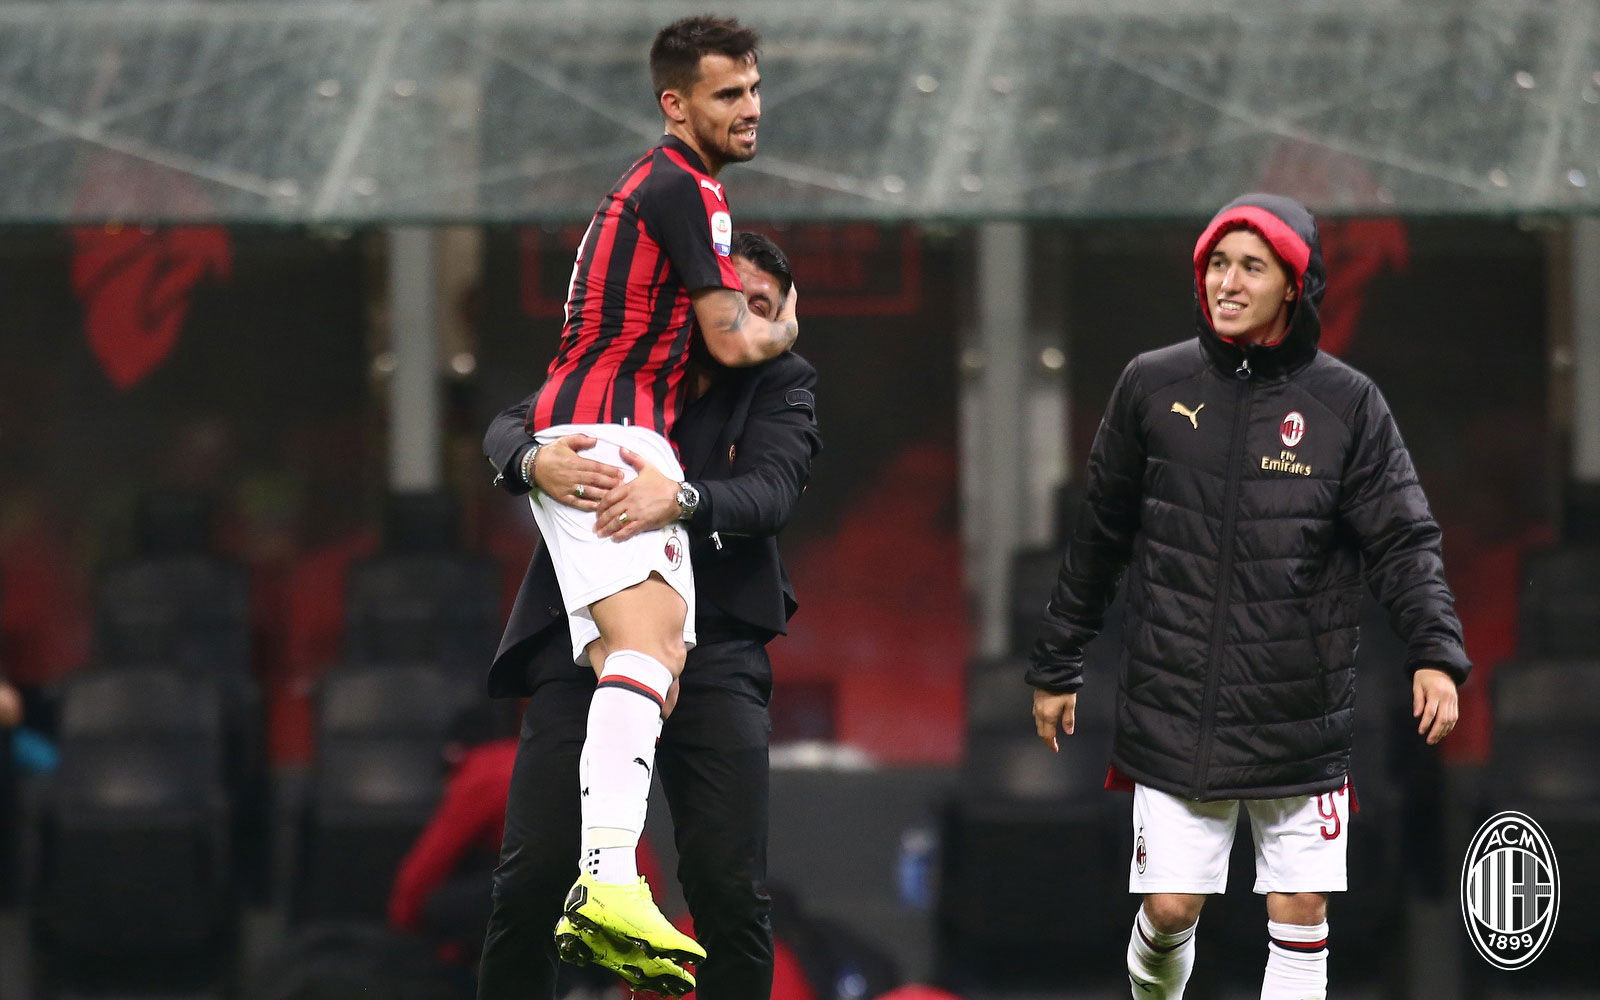 Gennaro Gattuso and Suso celebrating during Milan-Genoa at Stadio San Siro on October 31, 2018. (@acmilan.com)